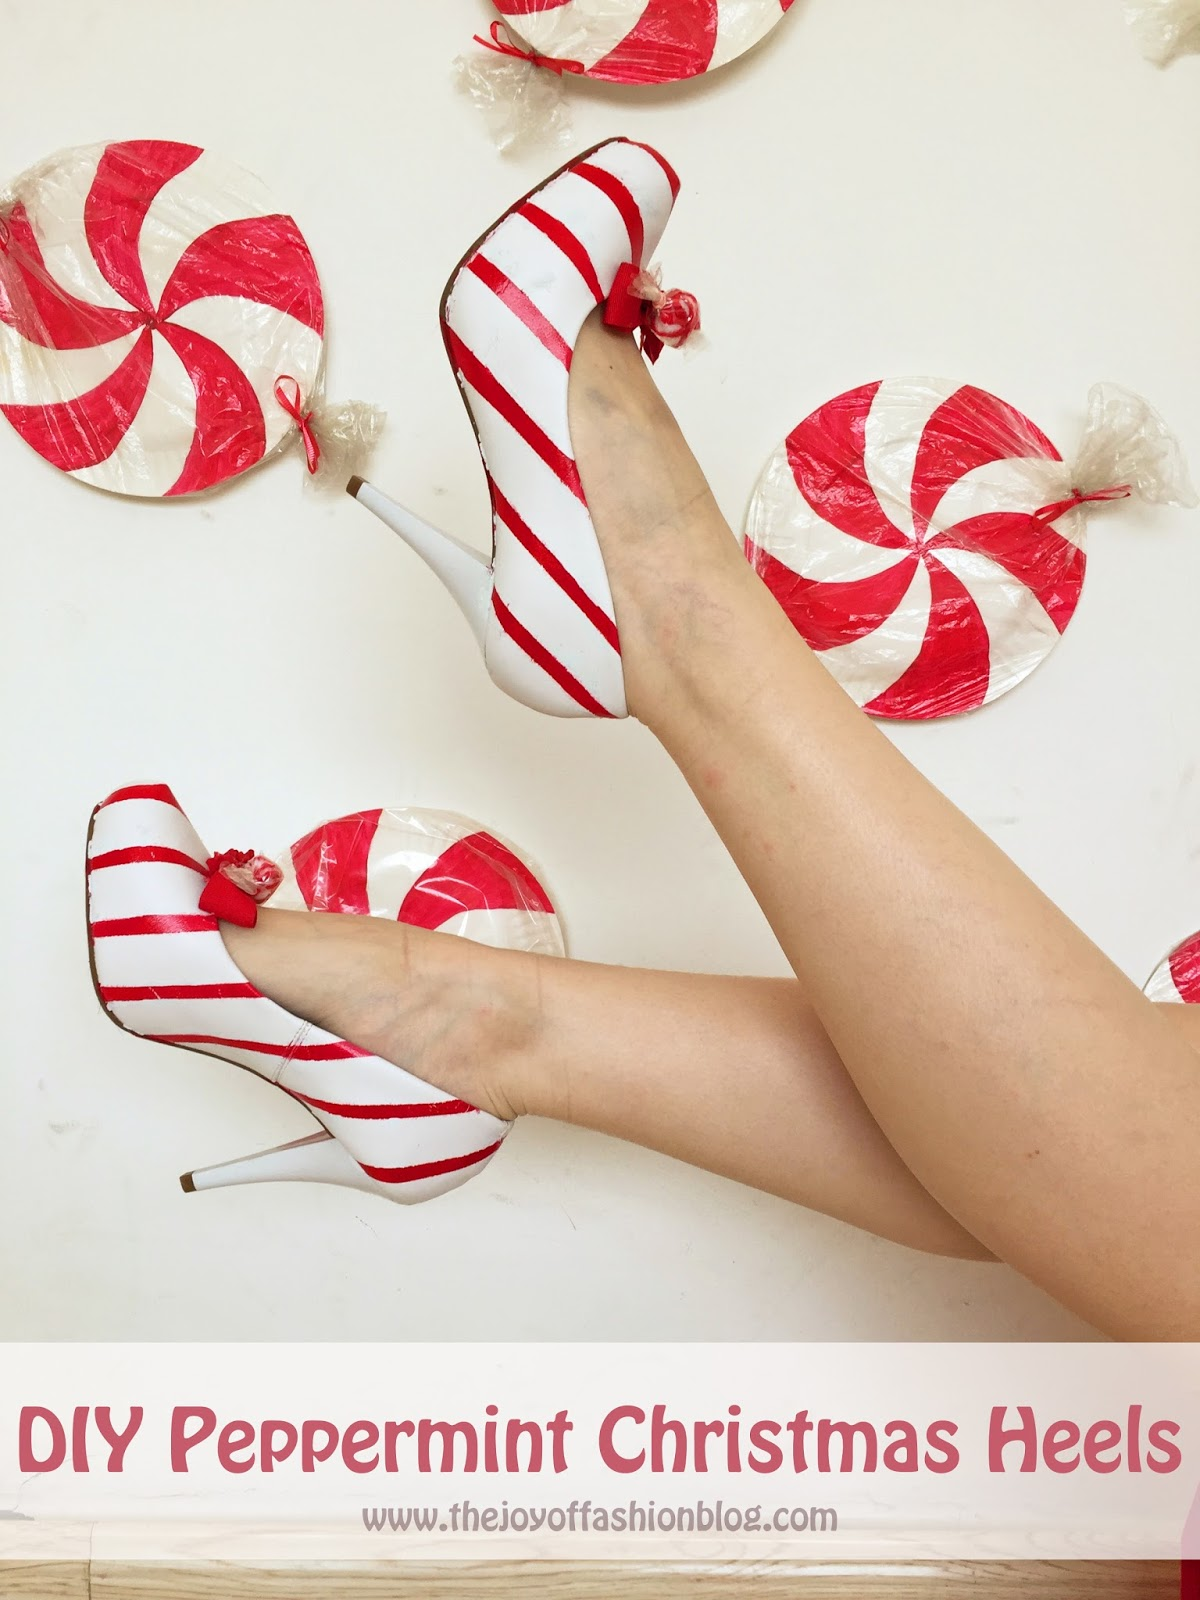 Adorable DIY peppermint heels for Christmas! Click through for full tutorial